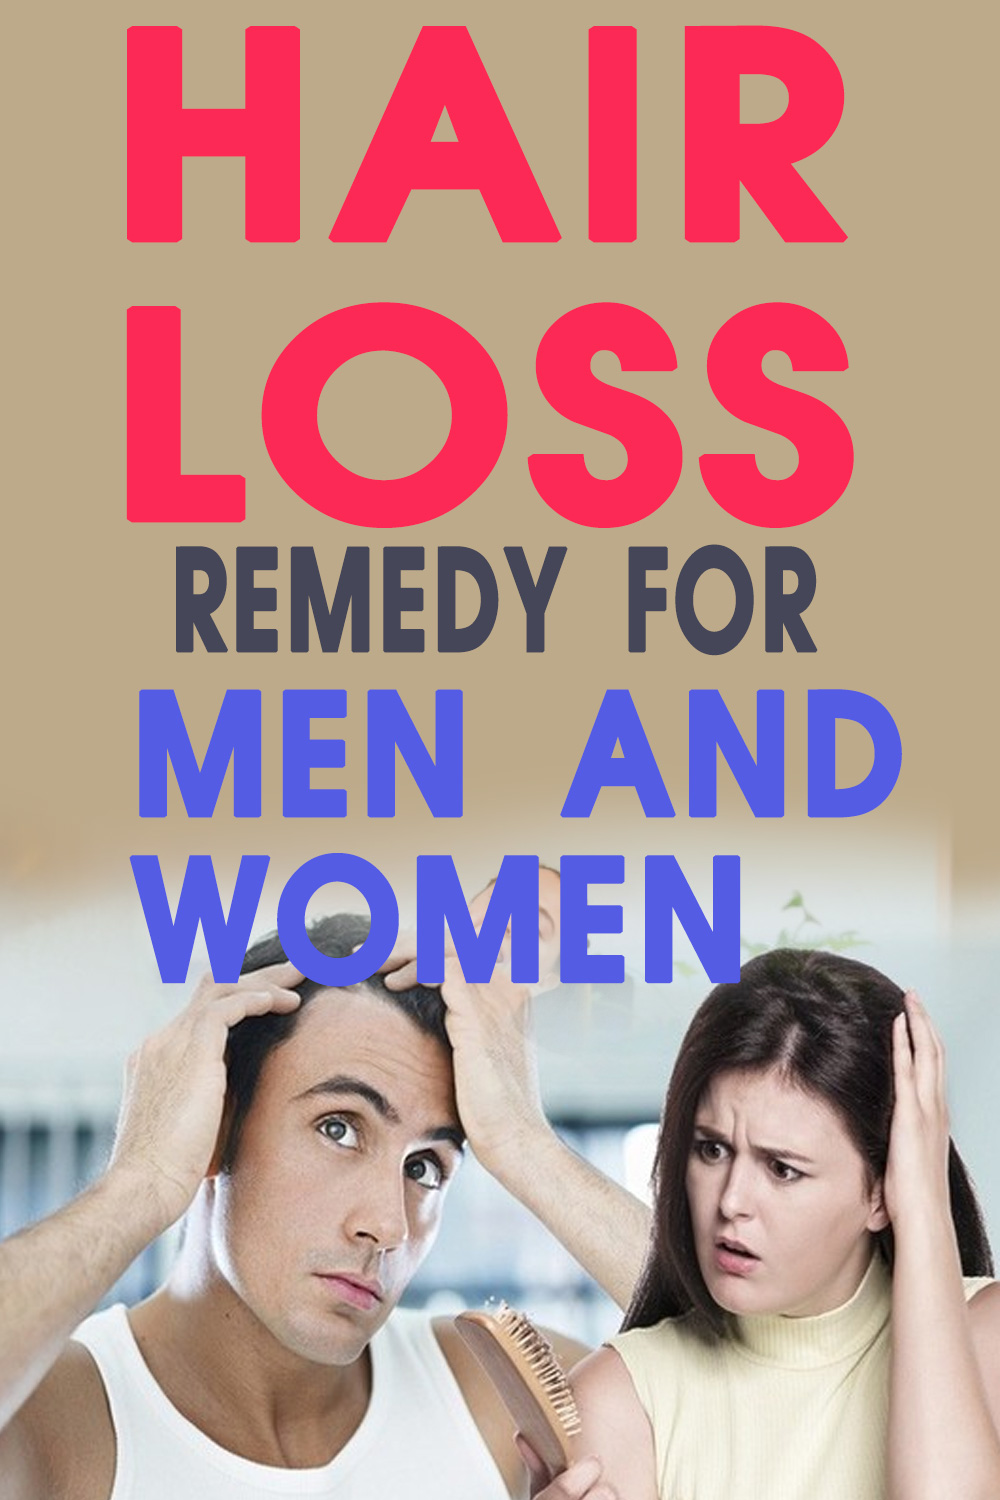 hair loss remedy for women and men